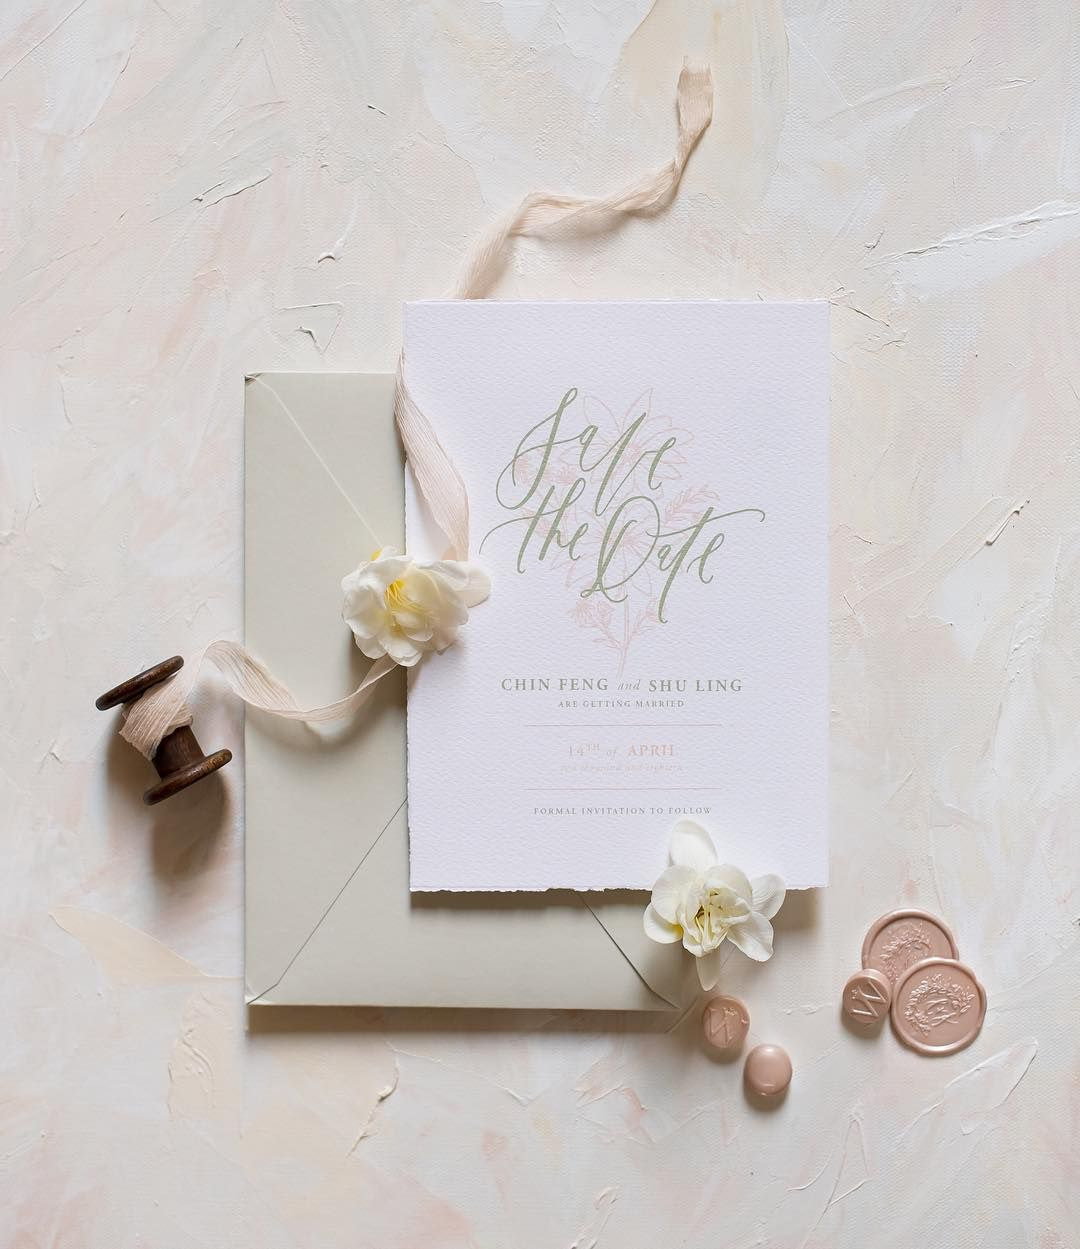 Gifts Of Grace Design On Instagram A Romantic Save The Date